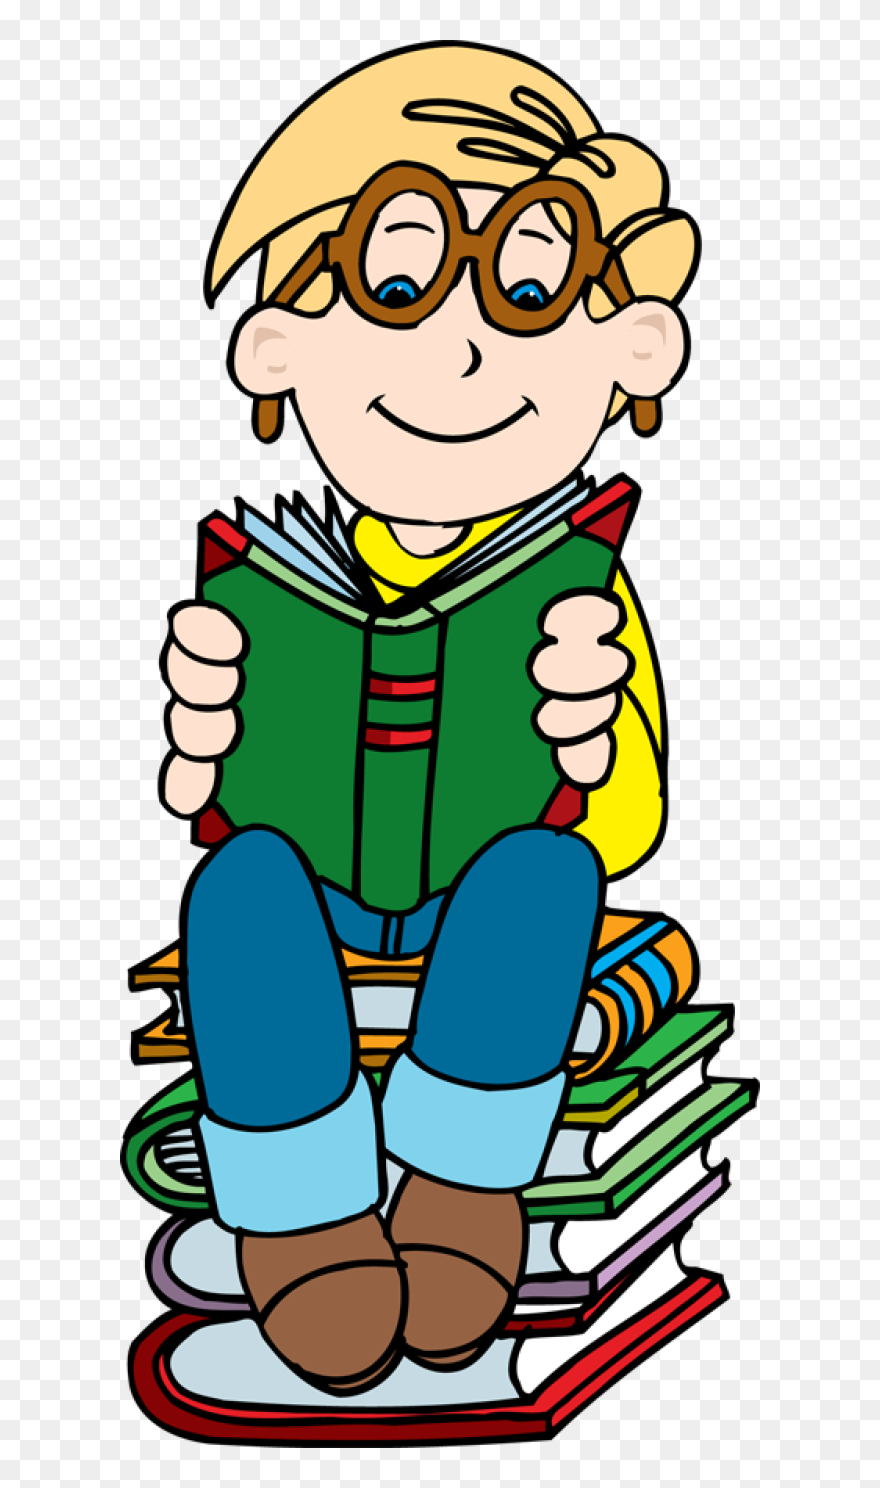 Girl Reading Book Clip Art Free Clipart Boy Reading Book Png Download 17936 Pinclipart